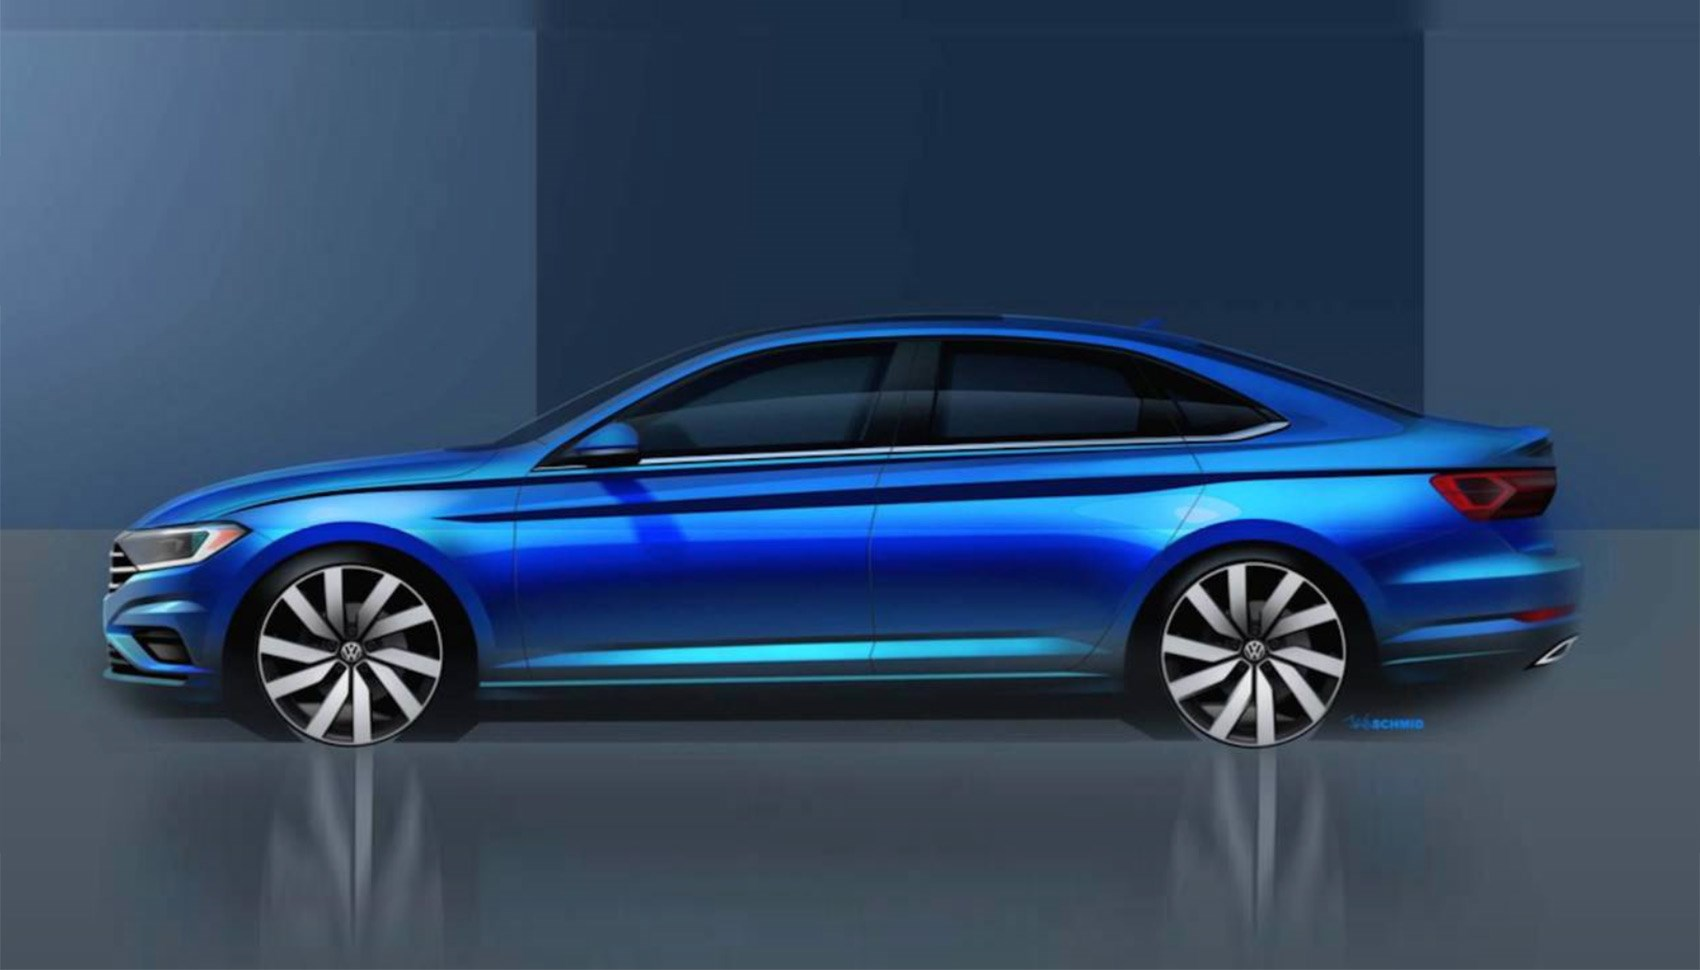 Official Design Sketch Of The New Vw Jetta Due At 2018 Detroit Motor Show